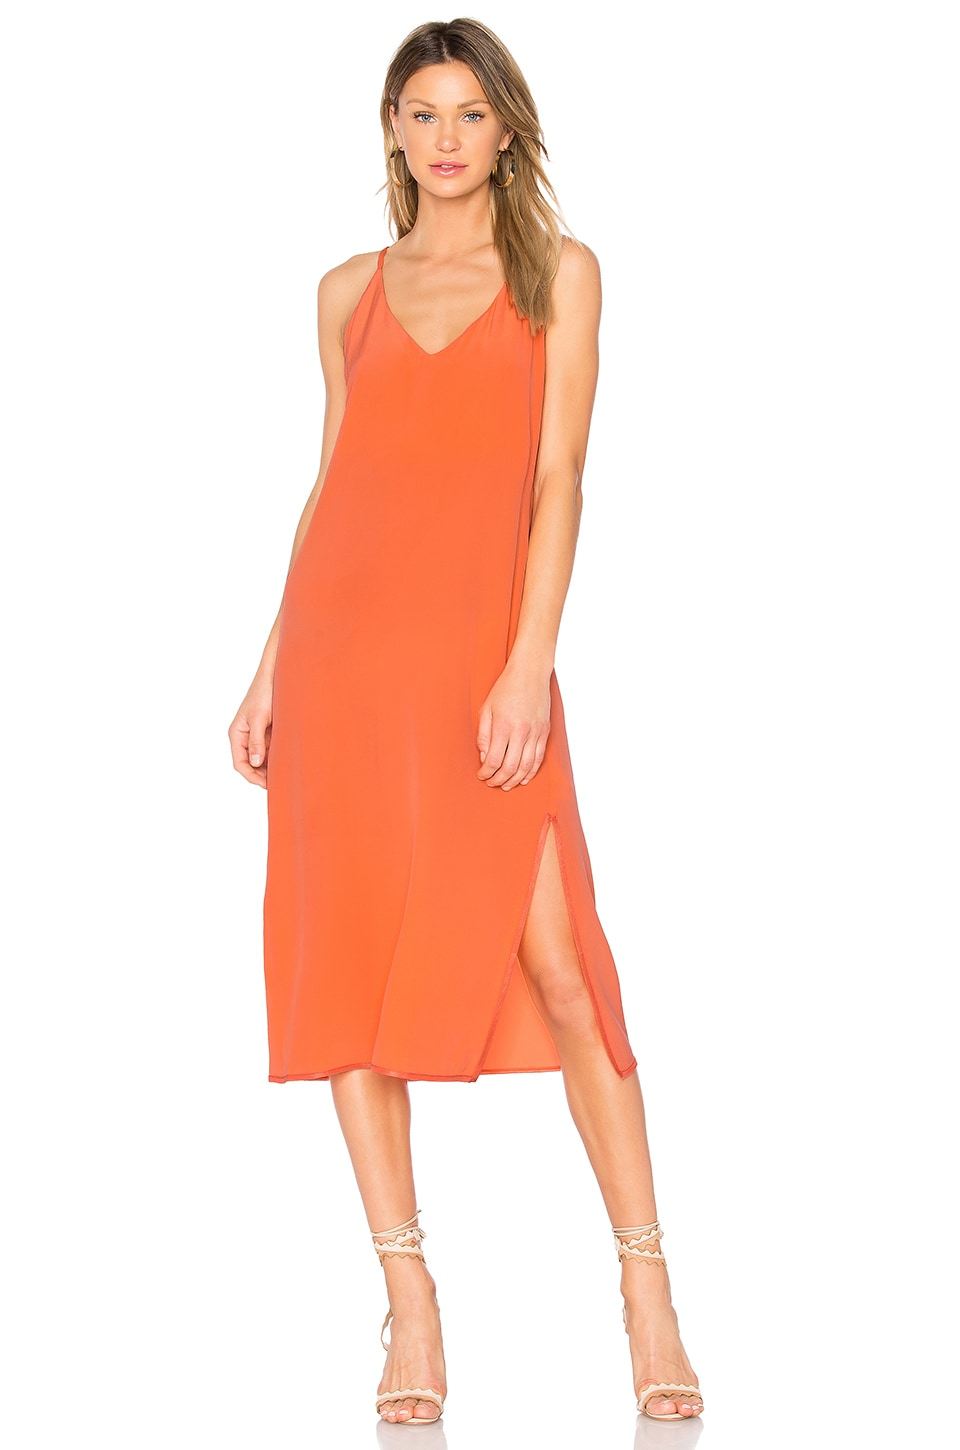 Maelle V Neck Maxi Dress by CHARLI